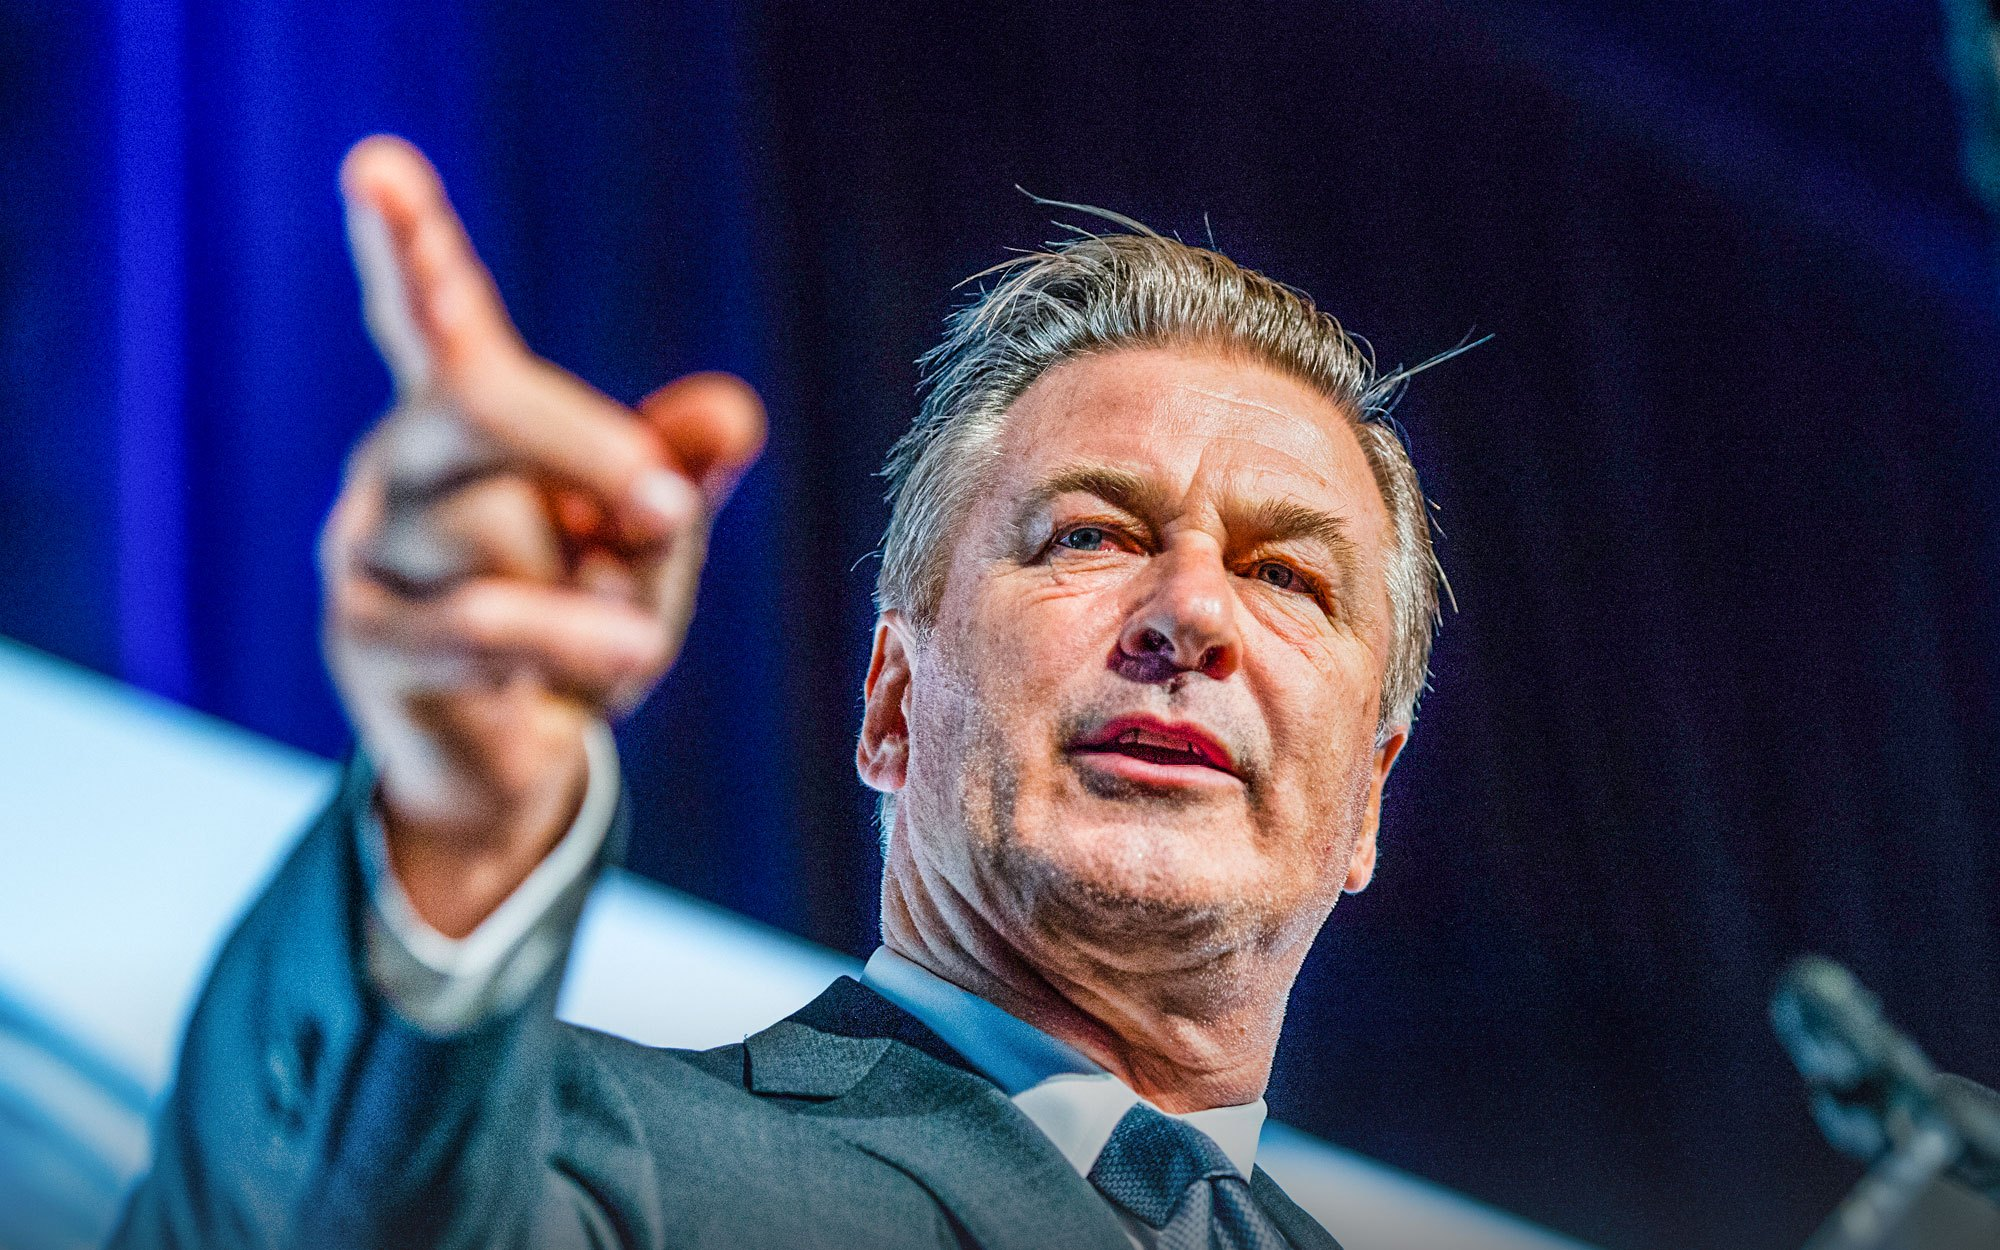 Alec Baldwin Blasts Trump Supporters, Saying They've Caused 'Colossal Destruction' to America